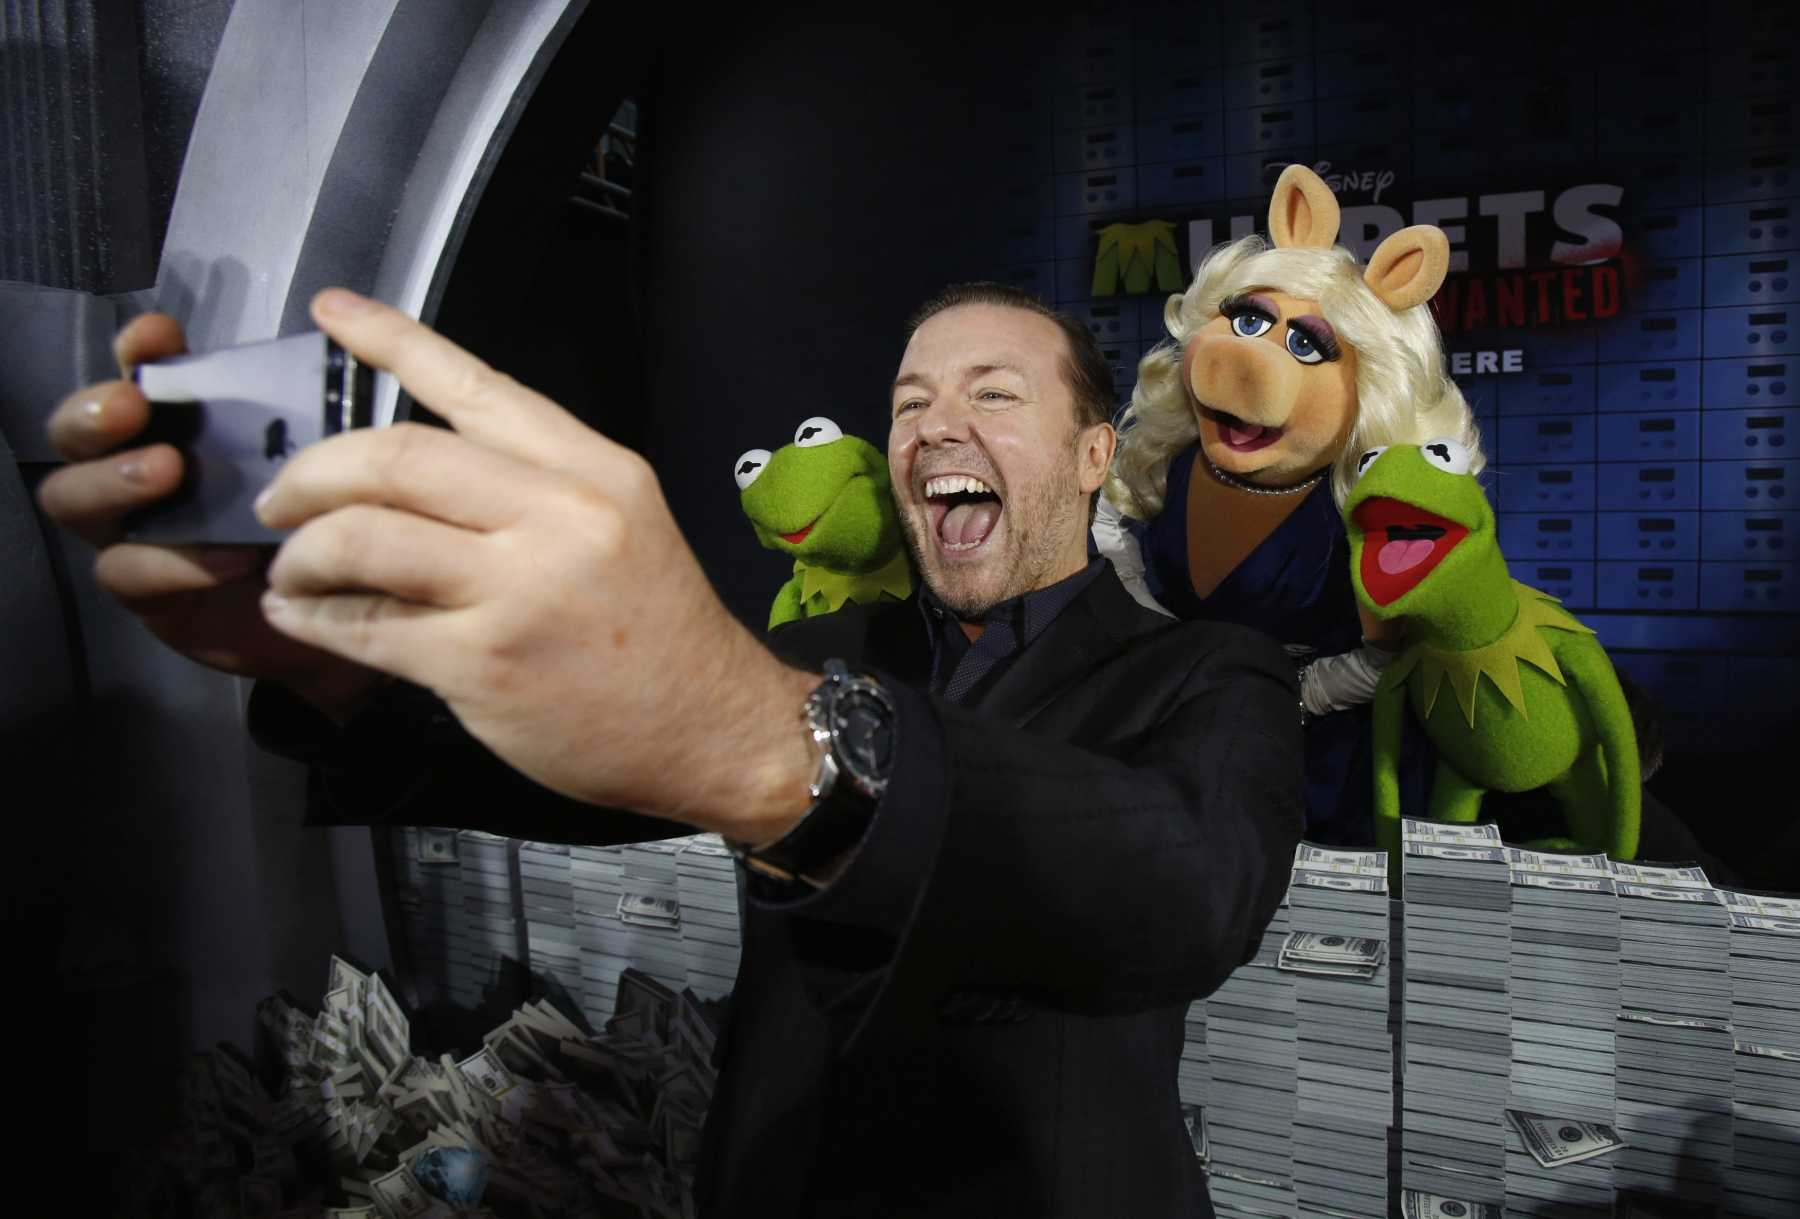 Ricky Gervais And Kermit The Frog's Doppelganger Reveal New